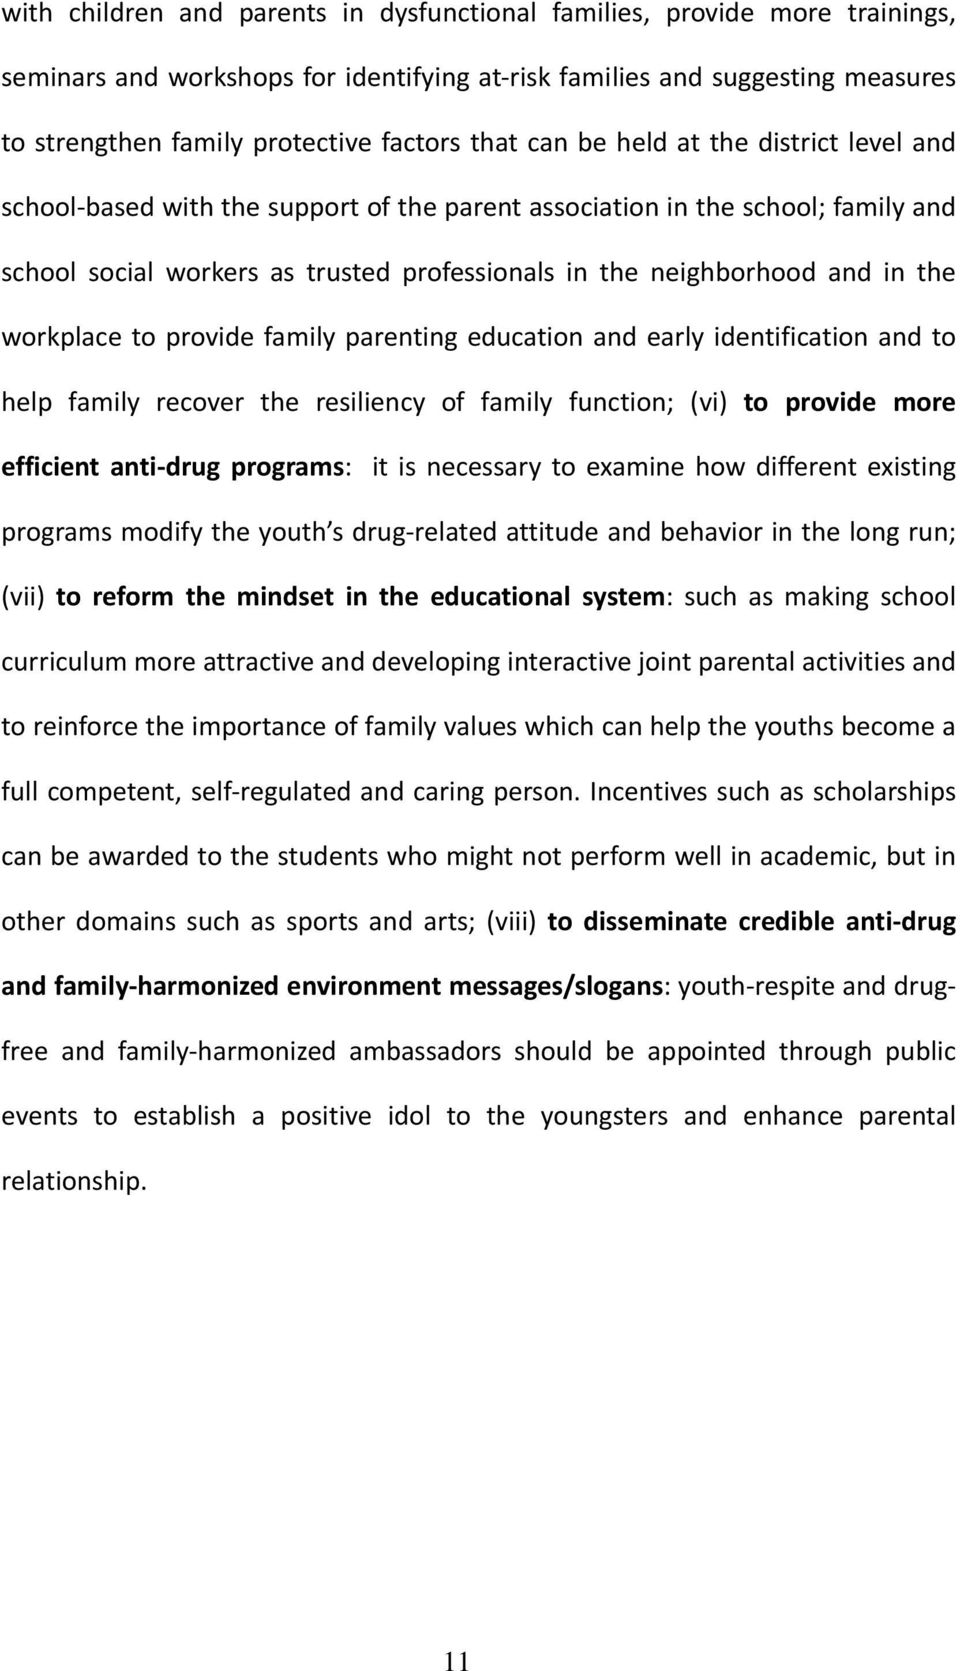 the workplace to provide family parenting education and early identification and to help family recover the resiliency of family function; (vi) to provide more efficient anti-drug programs: it is